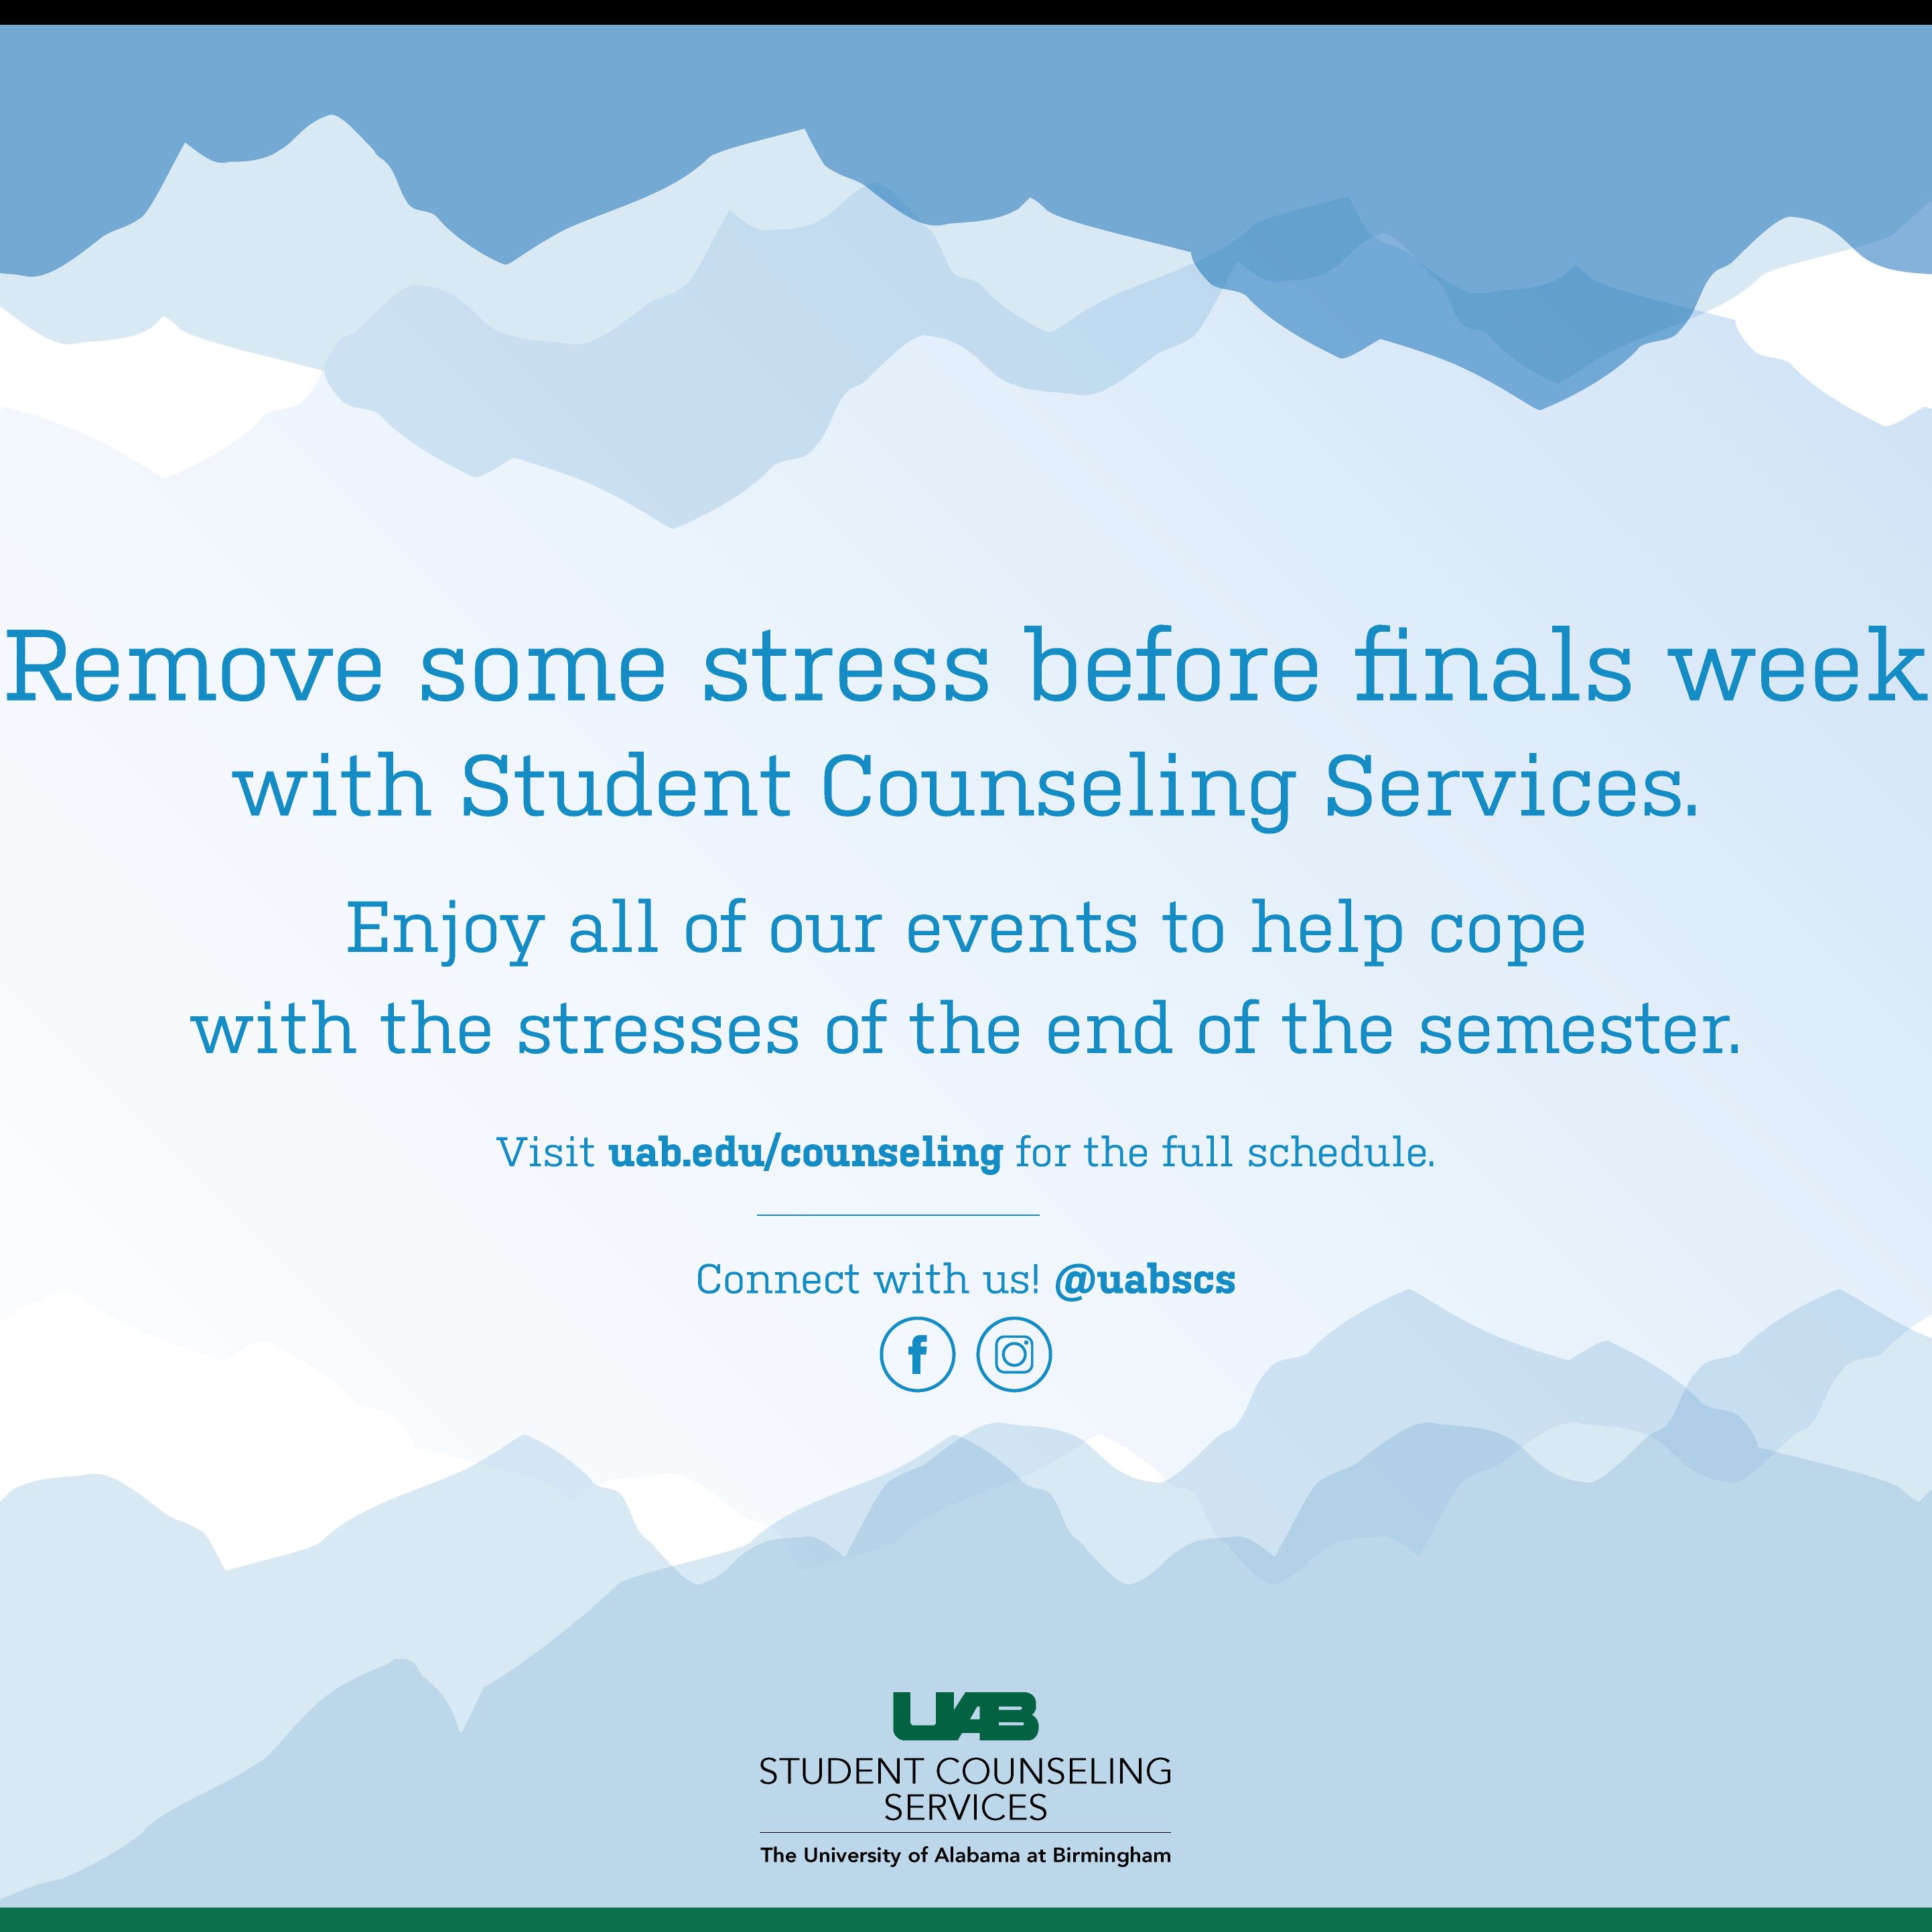 Fall18 SCS StressLessWeek DigitalSignage Final